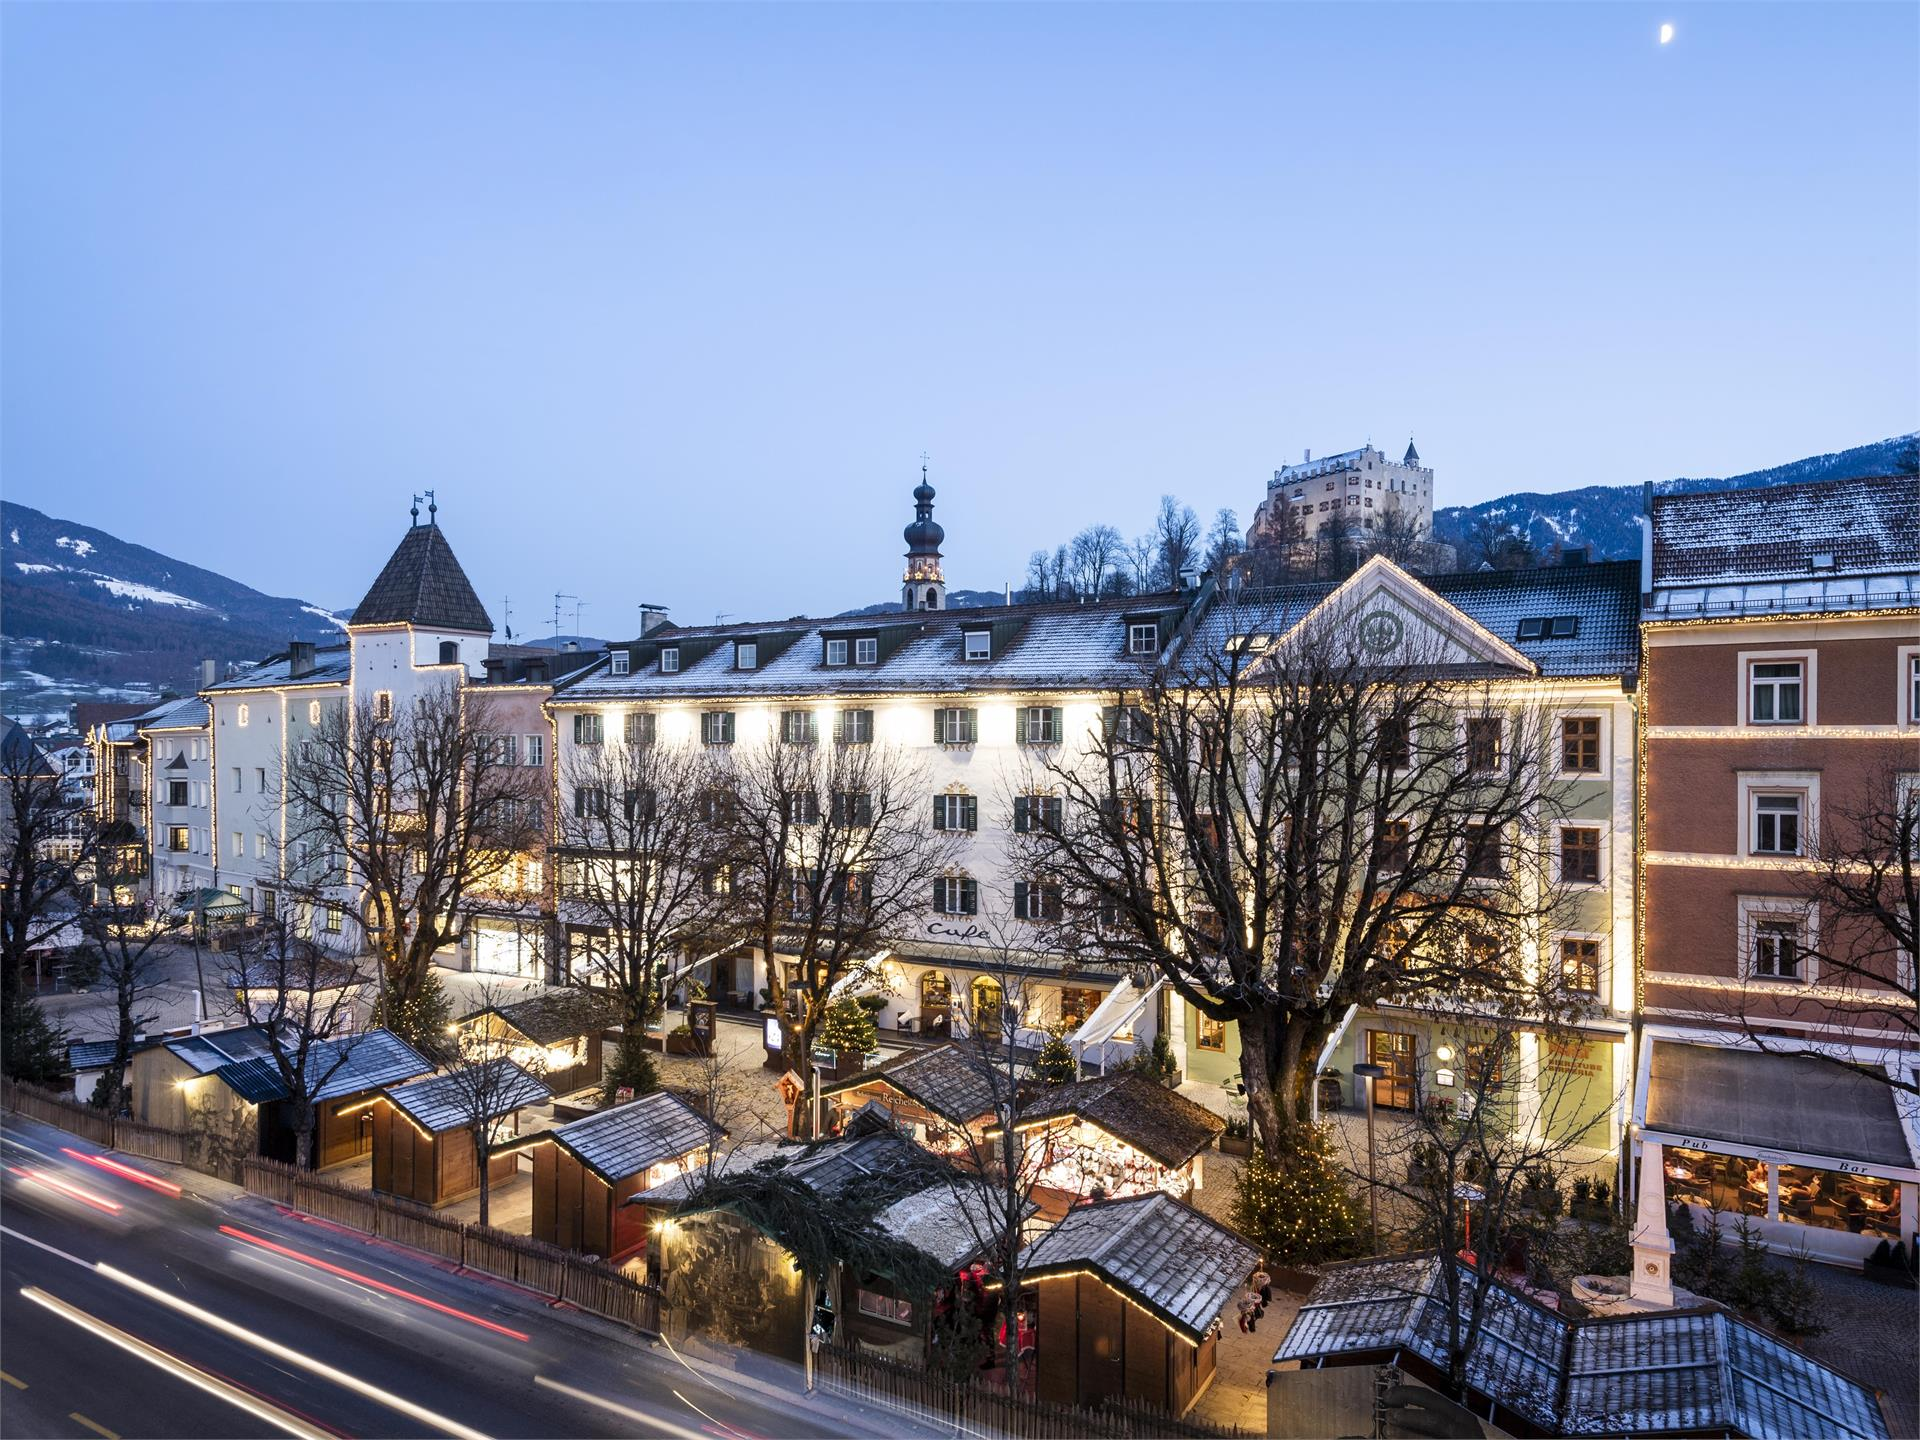 Christmas Market in Bruneck